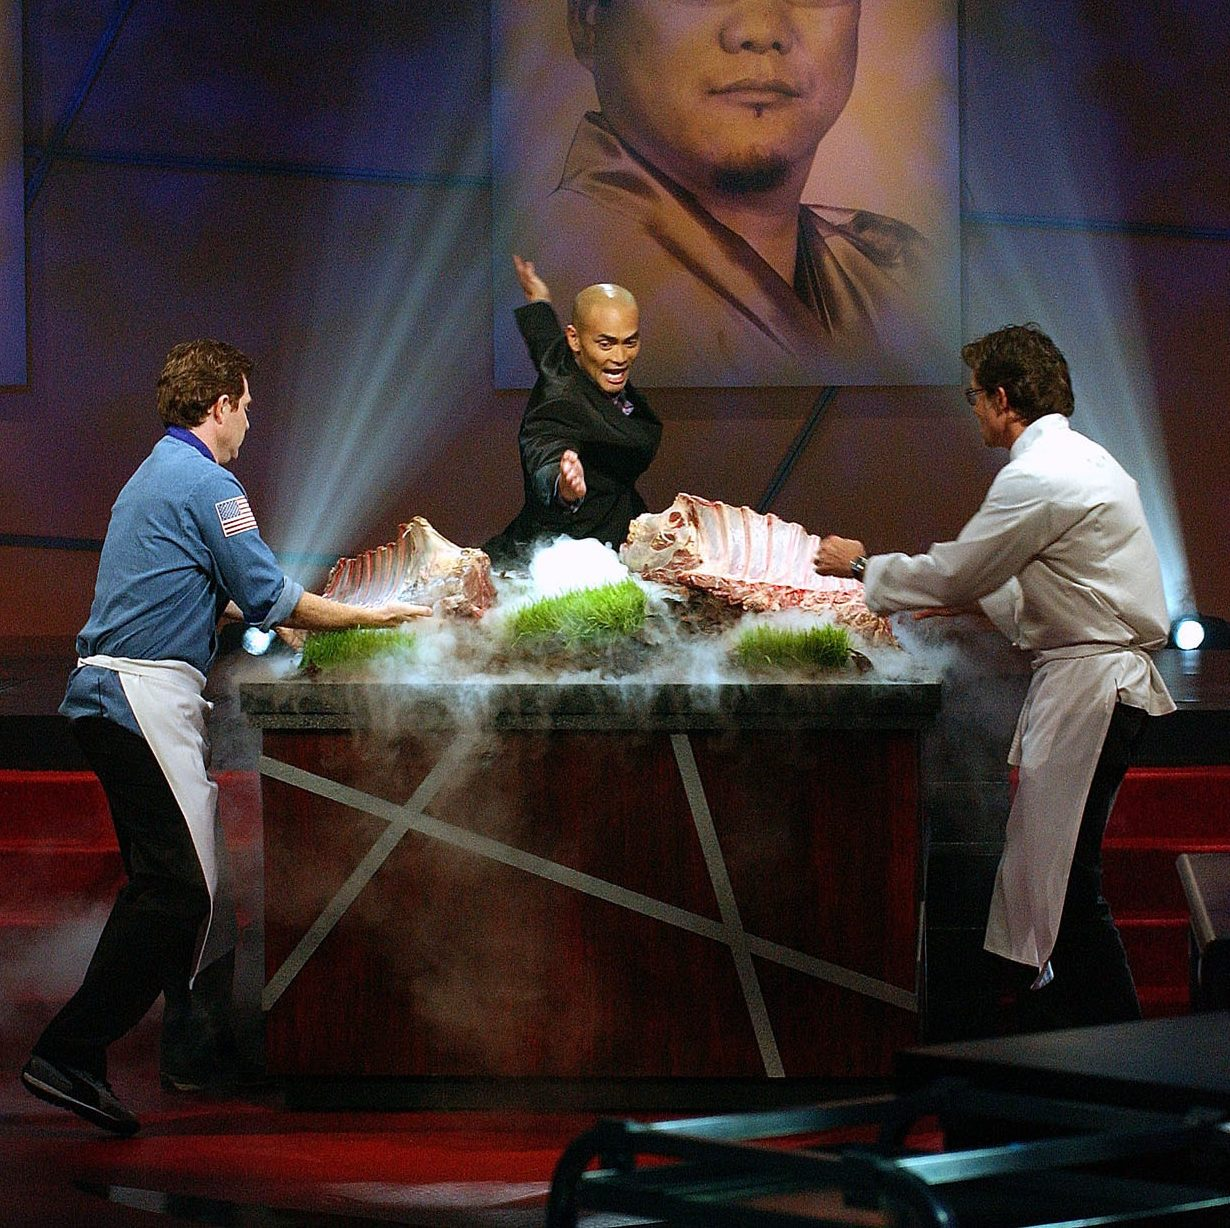 """Mandatory Credit: Photo by Jim Cooper/AP/Shutterstock (6405851b) Iron Chef Bobby Flay, left, of Mesa Grill in New York, and challenger Rick Bayless, right, of Frontera Grill in Chicago face off during a taping of the """"Iron Chef America"""" in New York, . Man in center is unidentified Q&A BOBBY FLAY, NEW YORK, USA"""